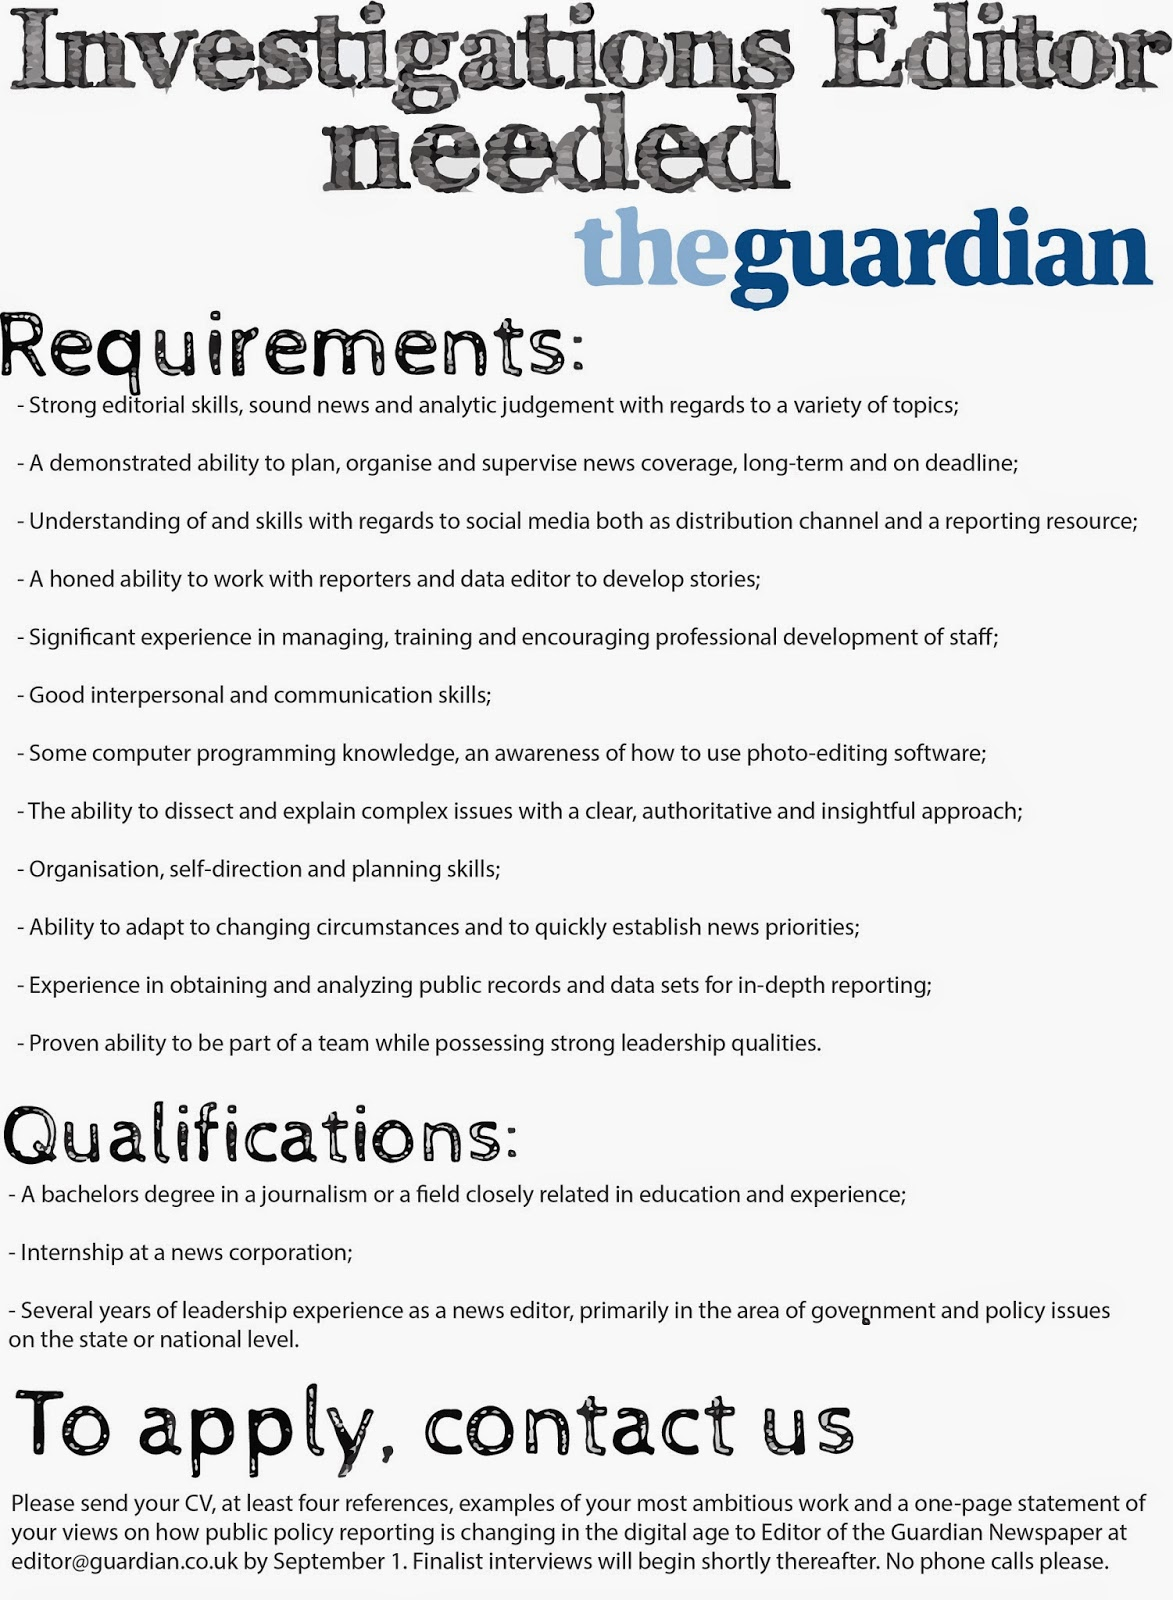 job advert sample